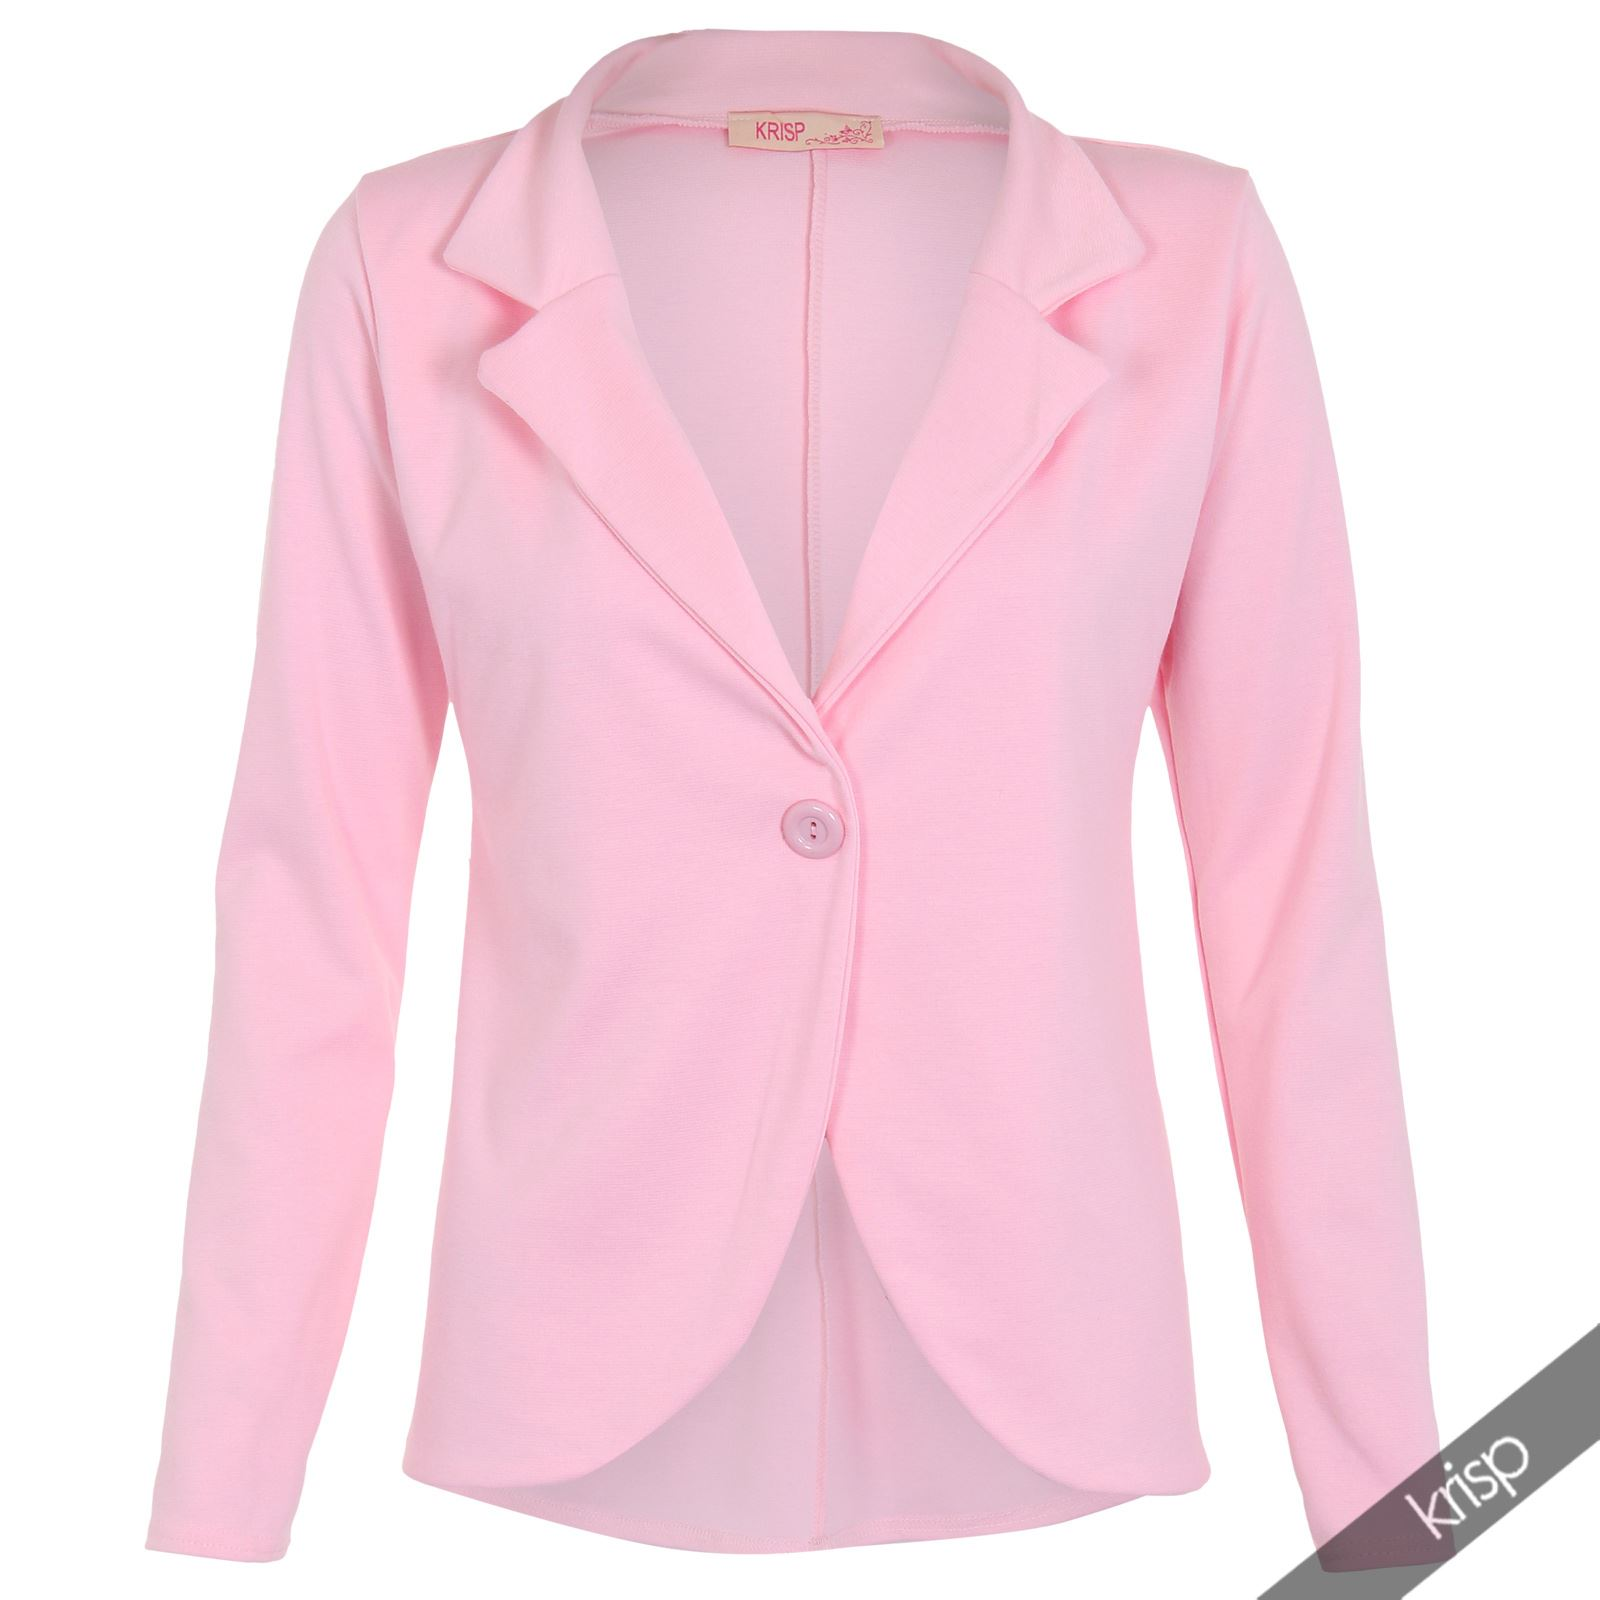 Womens-Jacket-Shrug-Casual-Blazer-Jersey-Smart-Suit-Ladies-Office-Evening-Coat thumbnail 3